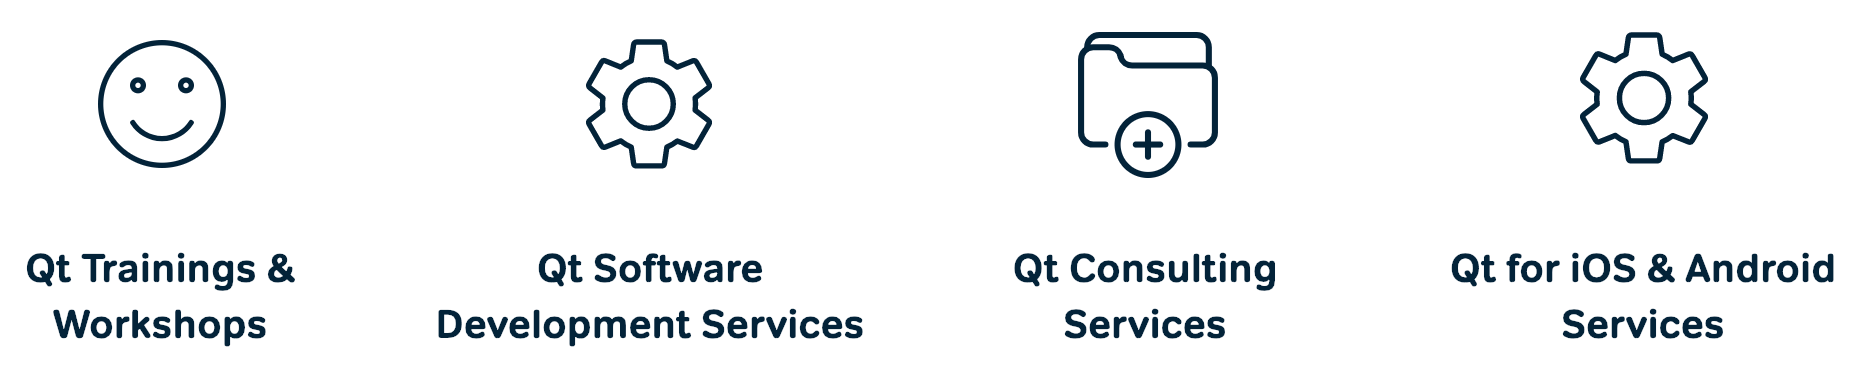 vplay-qt-training-consulting-services